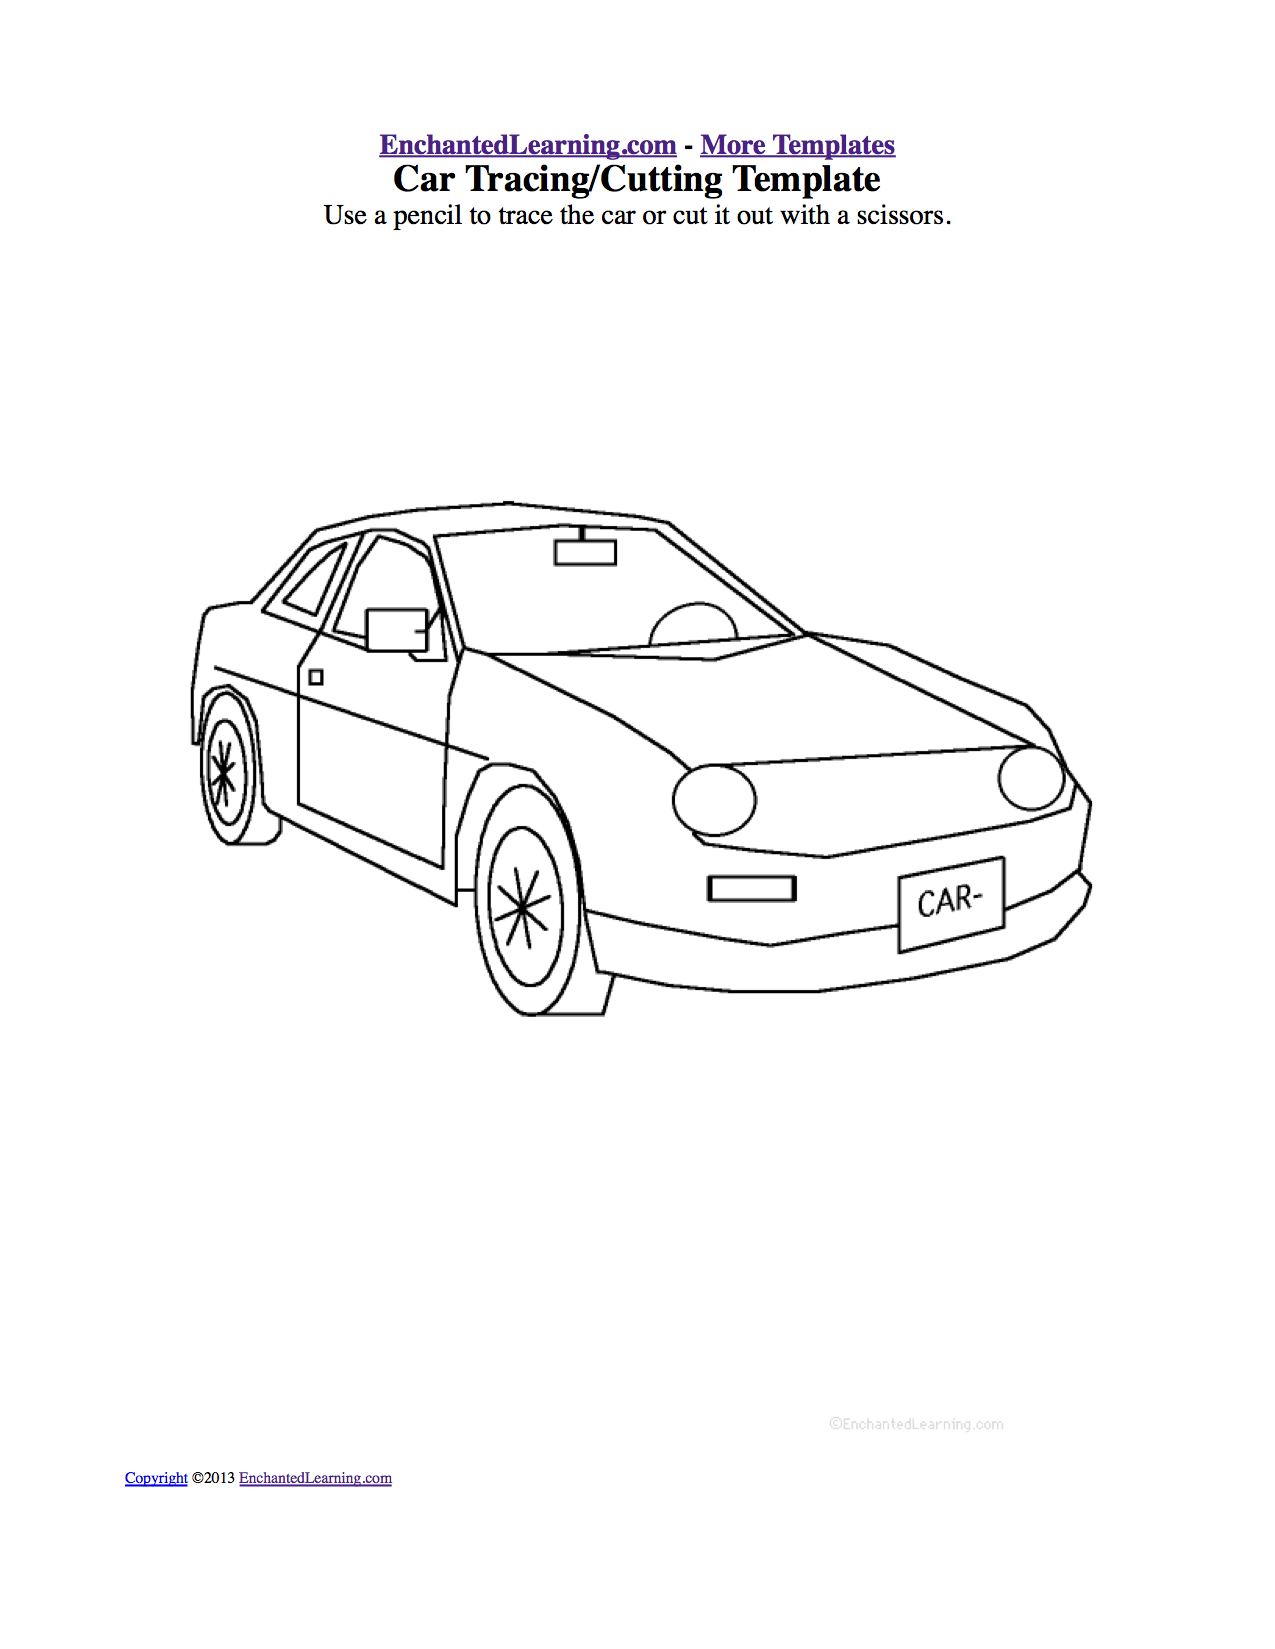 traceable car pictures tracingcutting templates enchantedlearningcom car pictures traceable